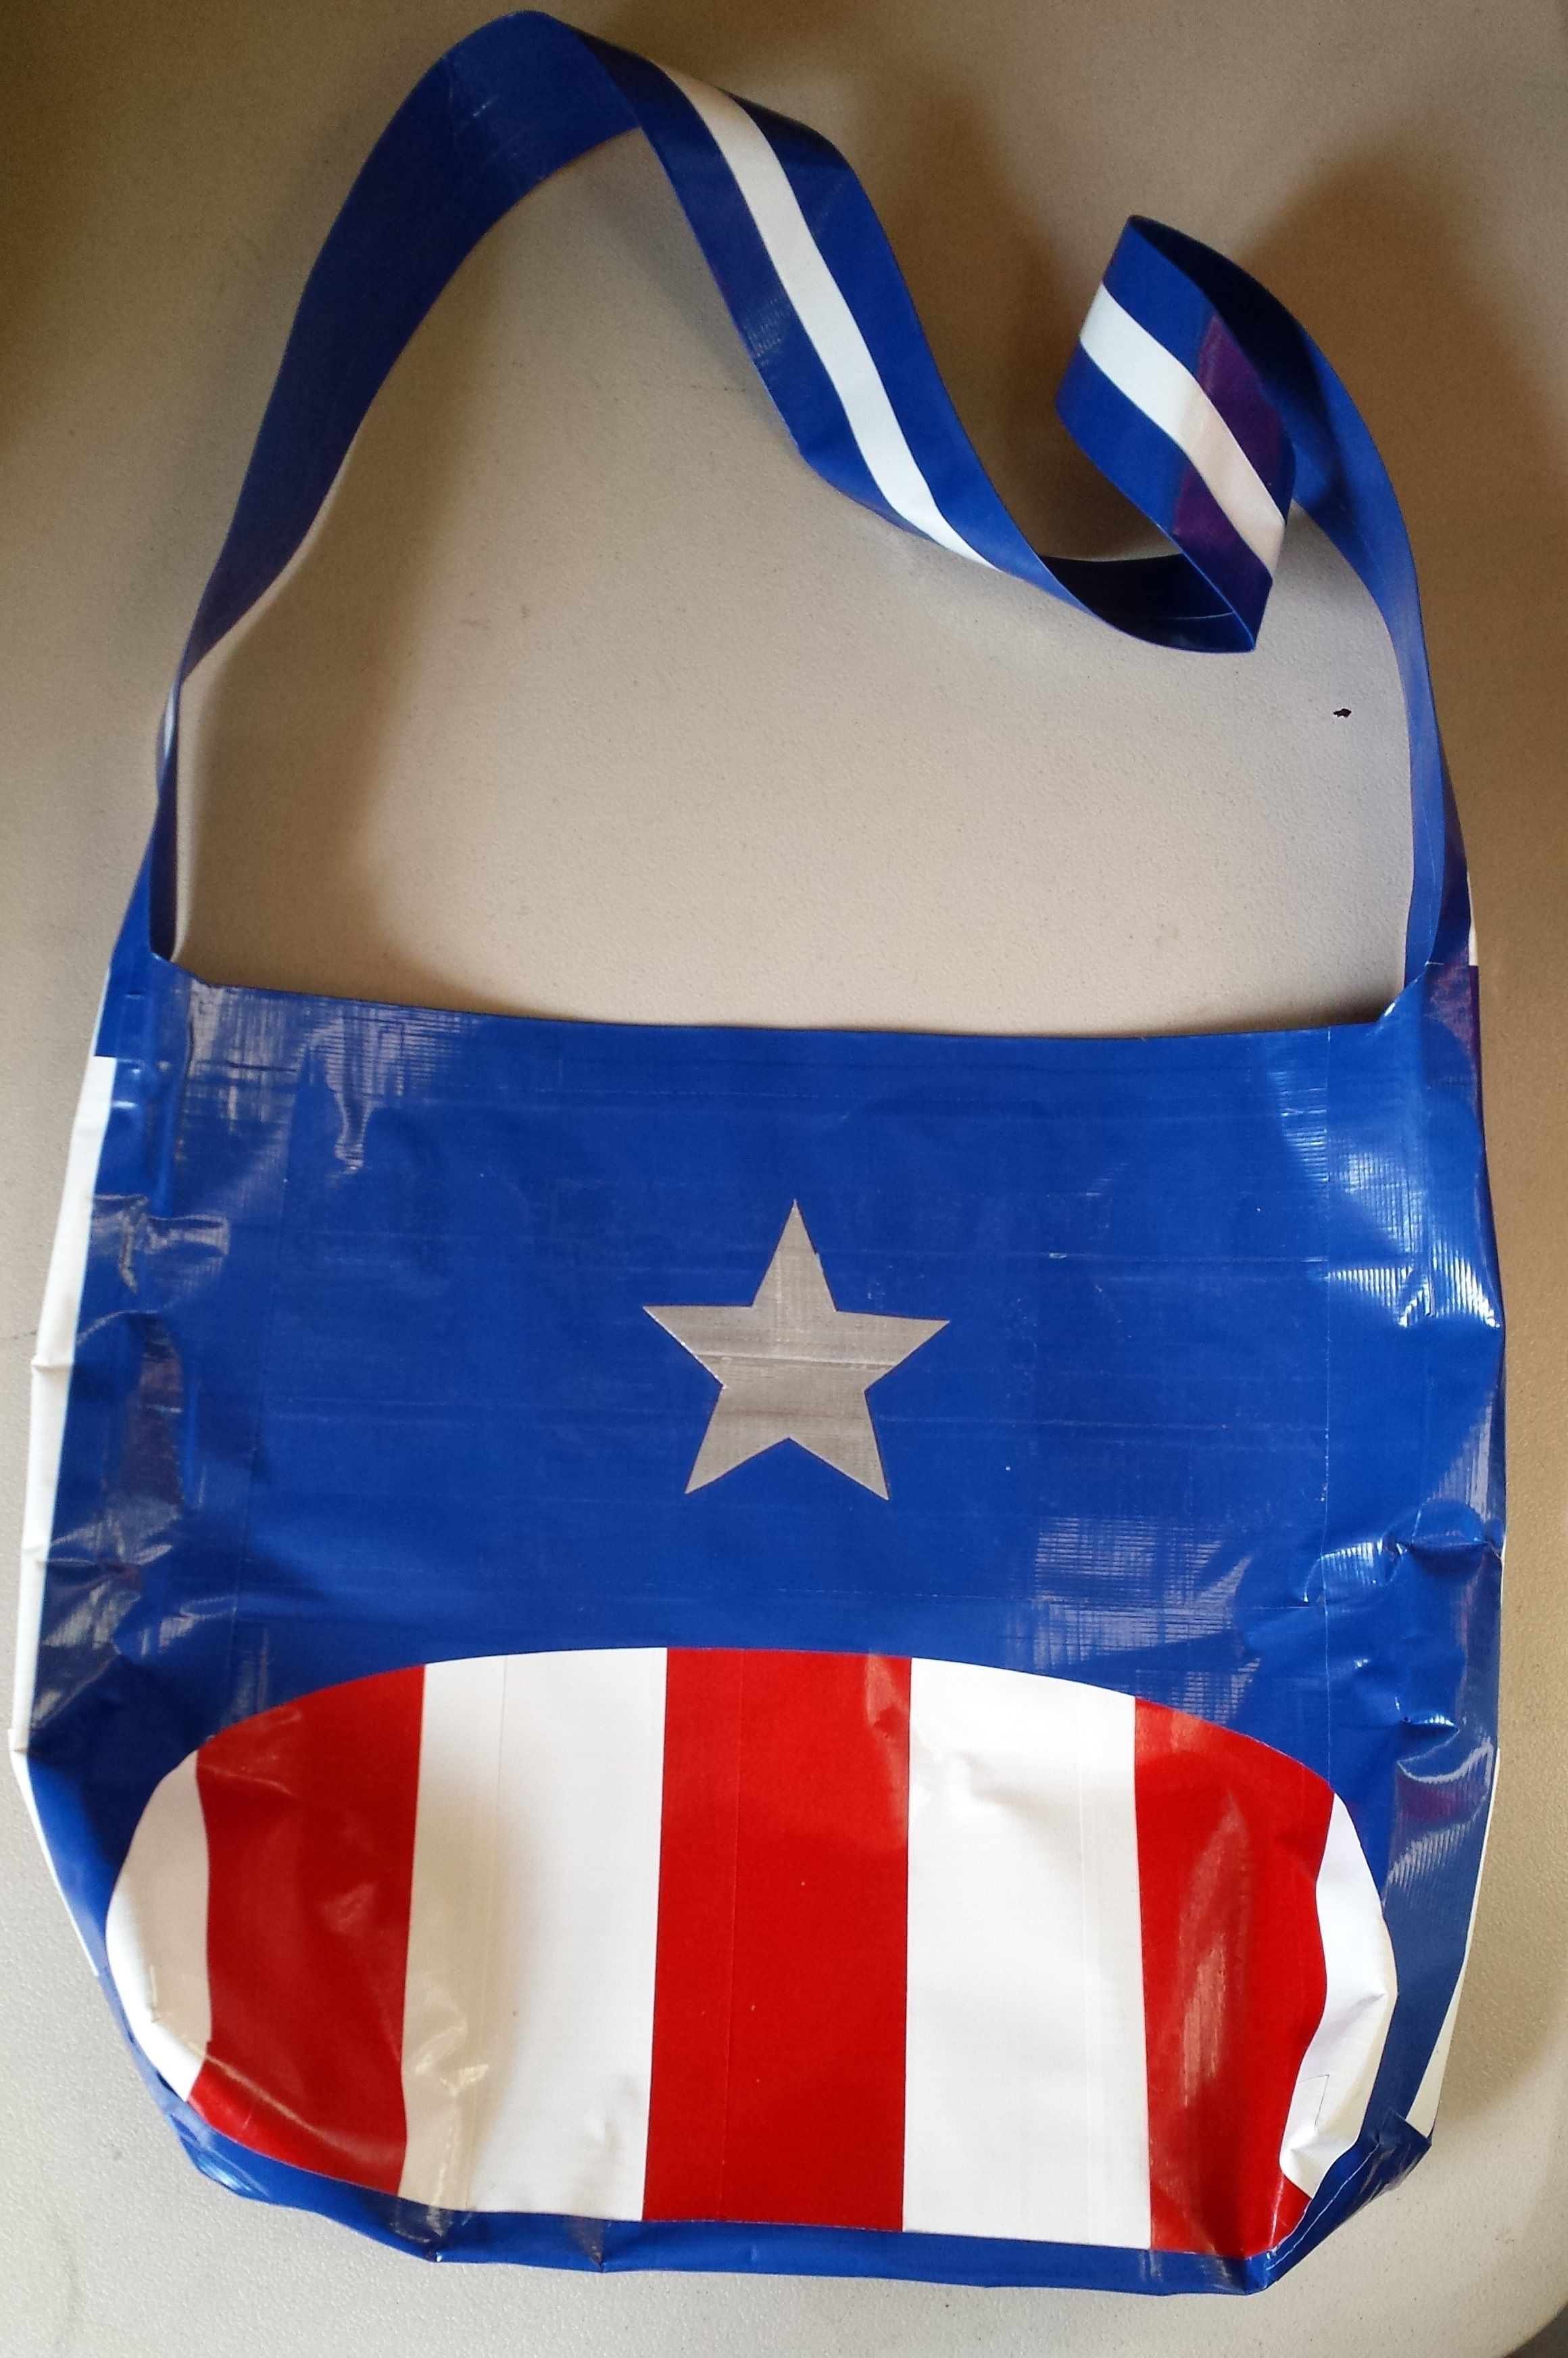 Captain America duct tape bag